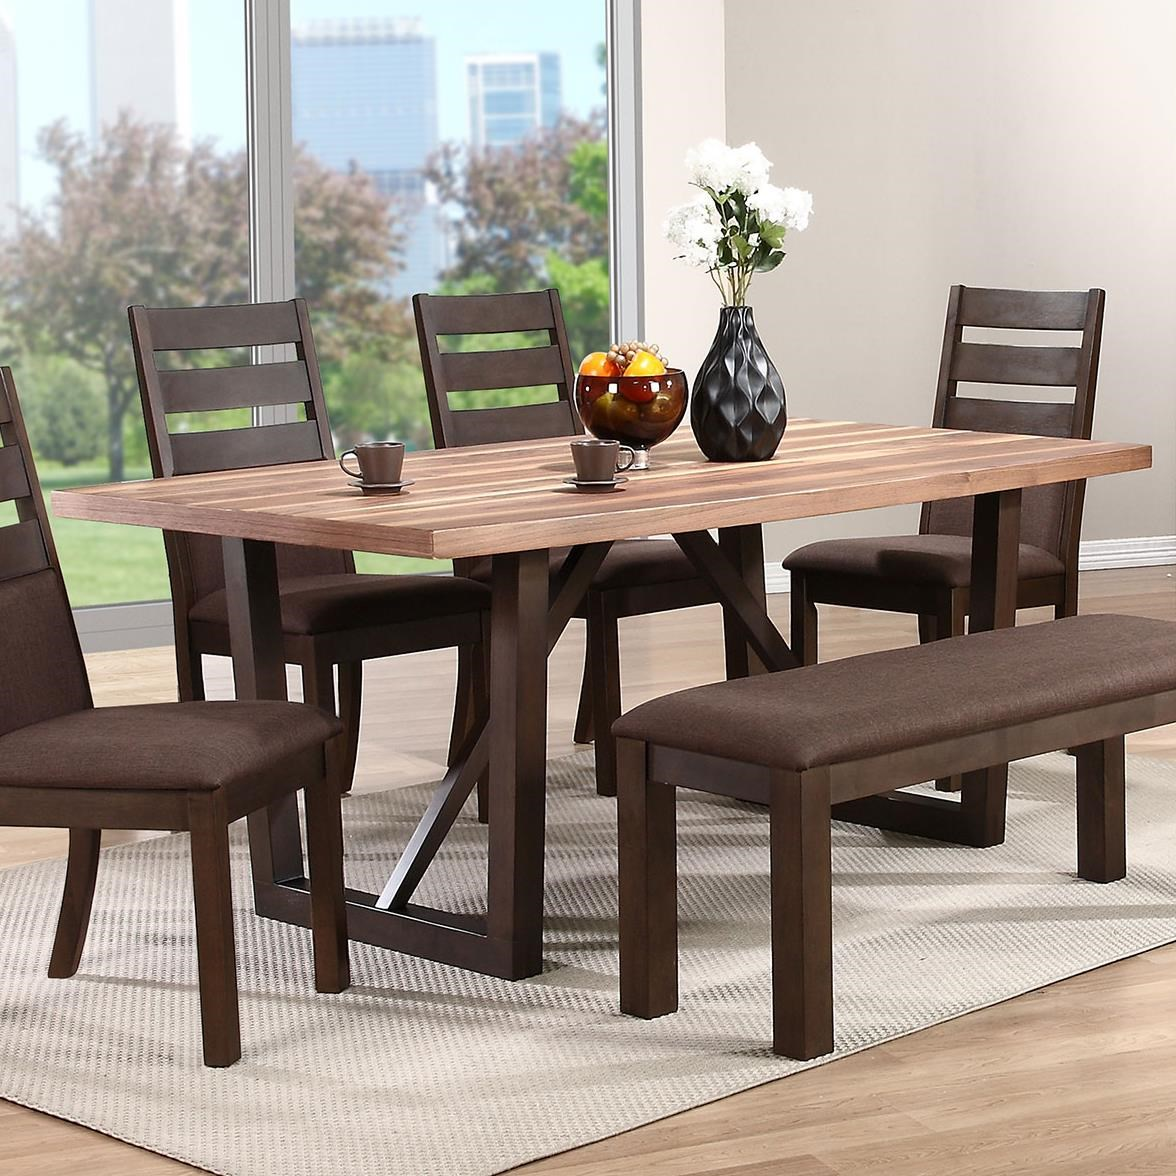 troyer two-tone rectangular trestle table - rotmans - dining room